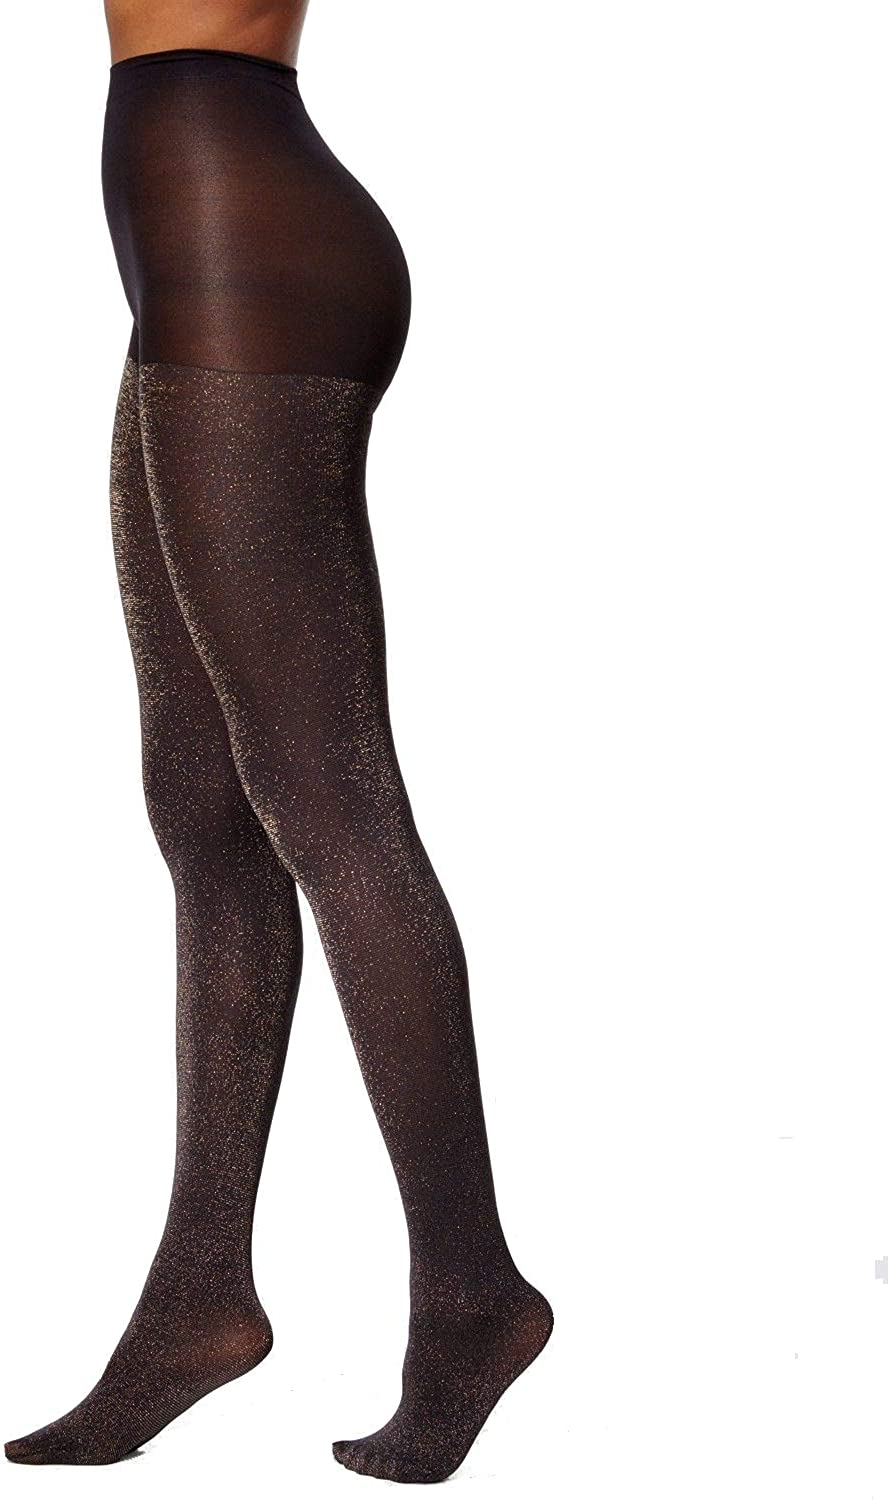 Hue Women's Control-Top Glitter Tights, Silver, Size S/M